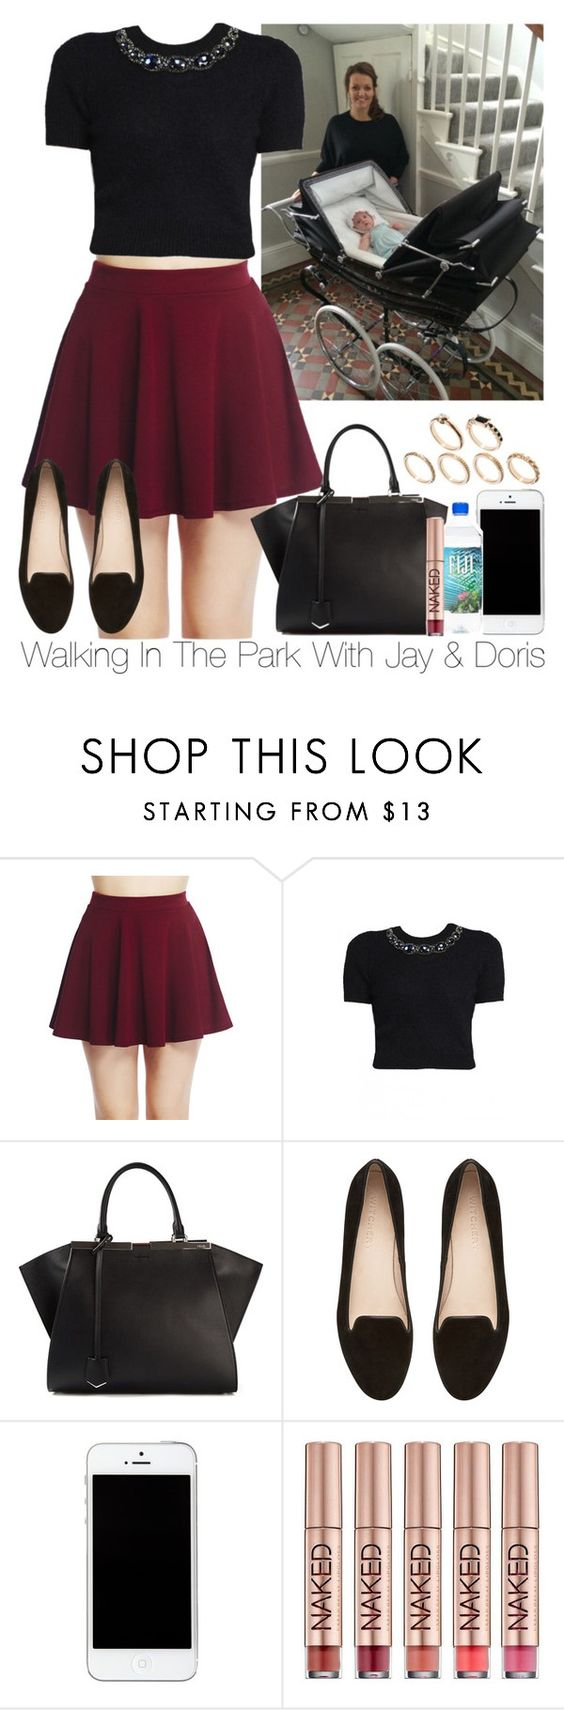 """Walking In The Park With Jay & Doris"" by storyofmylife1danita-scream ❤ liked on Polyvore featuring Wet Seal, Matthew Williamson, Fendi, Witchery, Urban Decay and ASOS"